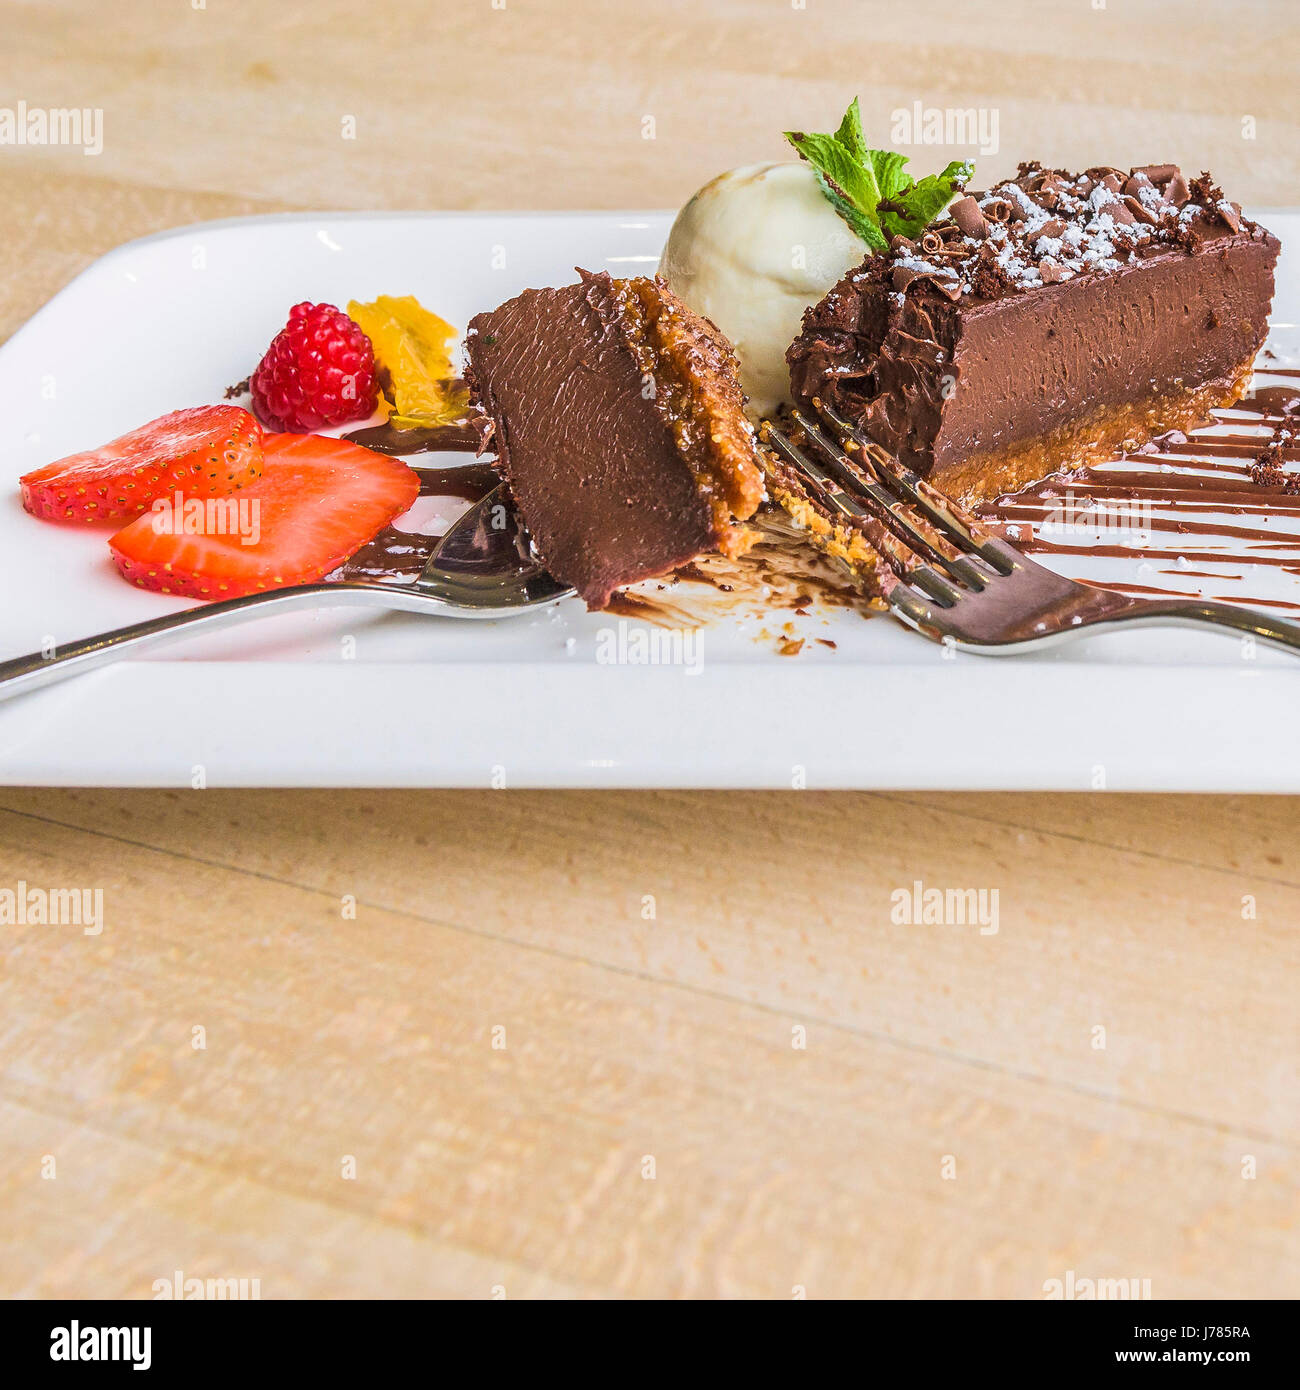 Chocolate Delice with vanilla ice cream; Pudding; Sweet; Restaurant interior; Food; Indulgence; Luxury; Luxurious; - Stock Image